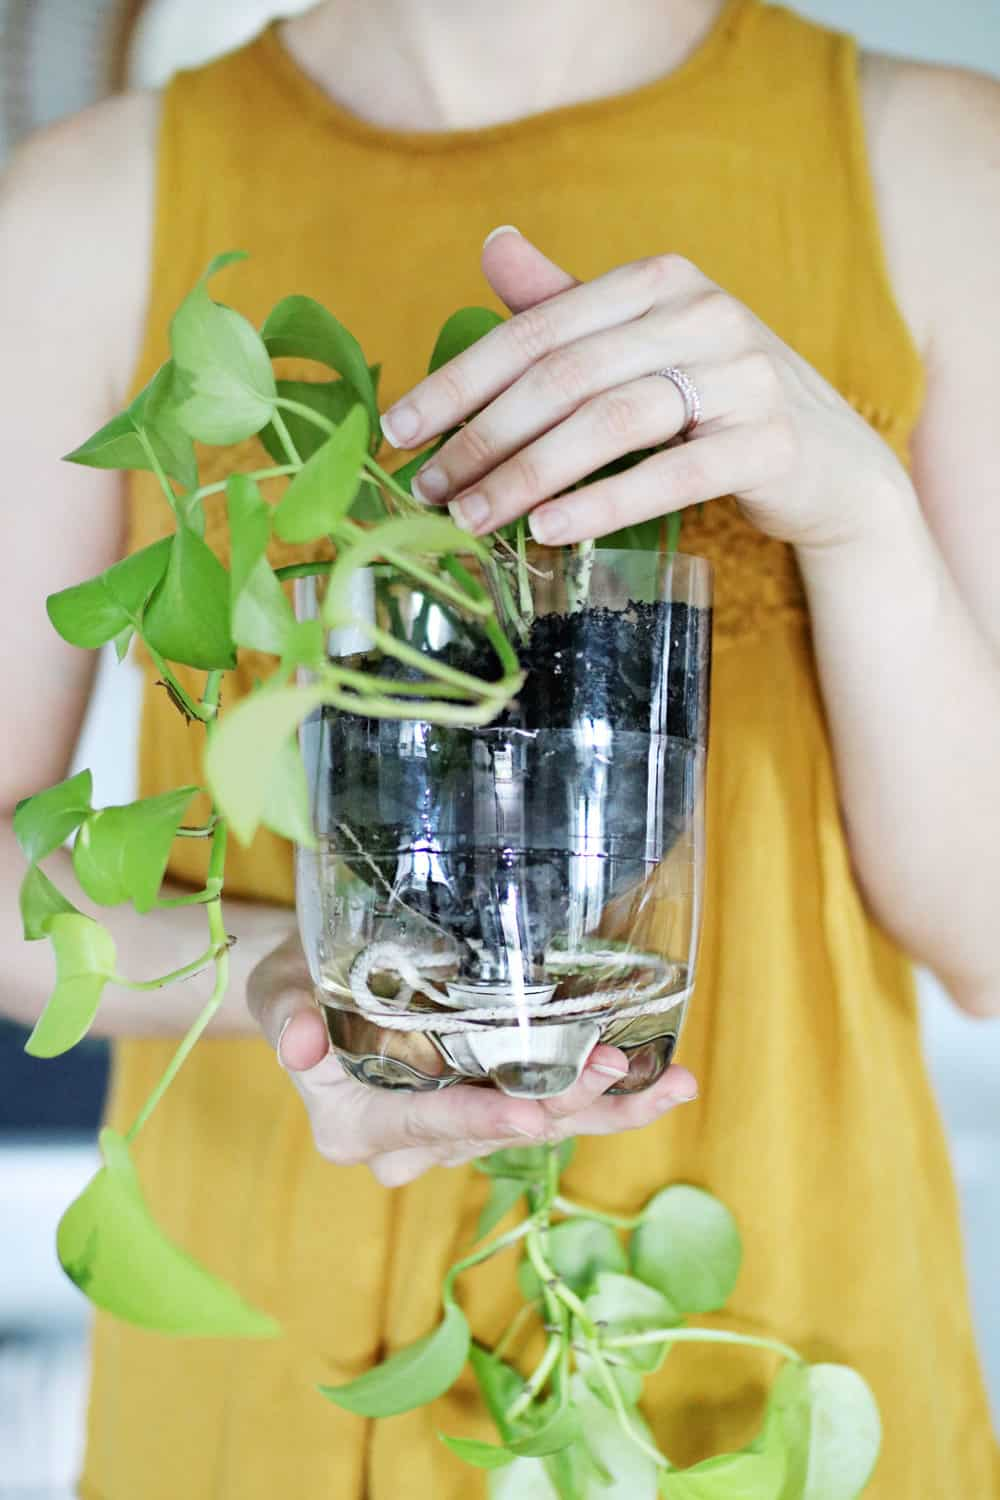 Make Self Watering Planters 3 Self Watering Planter Hacks You Have To Try Hello Glow